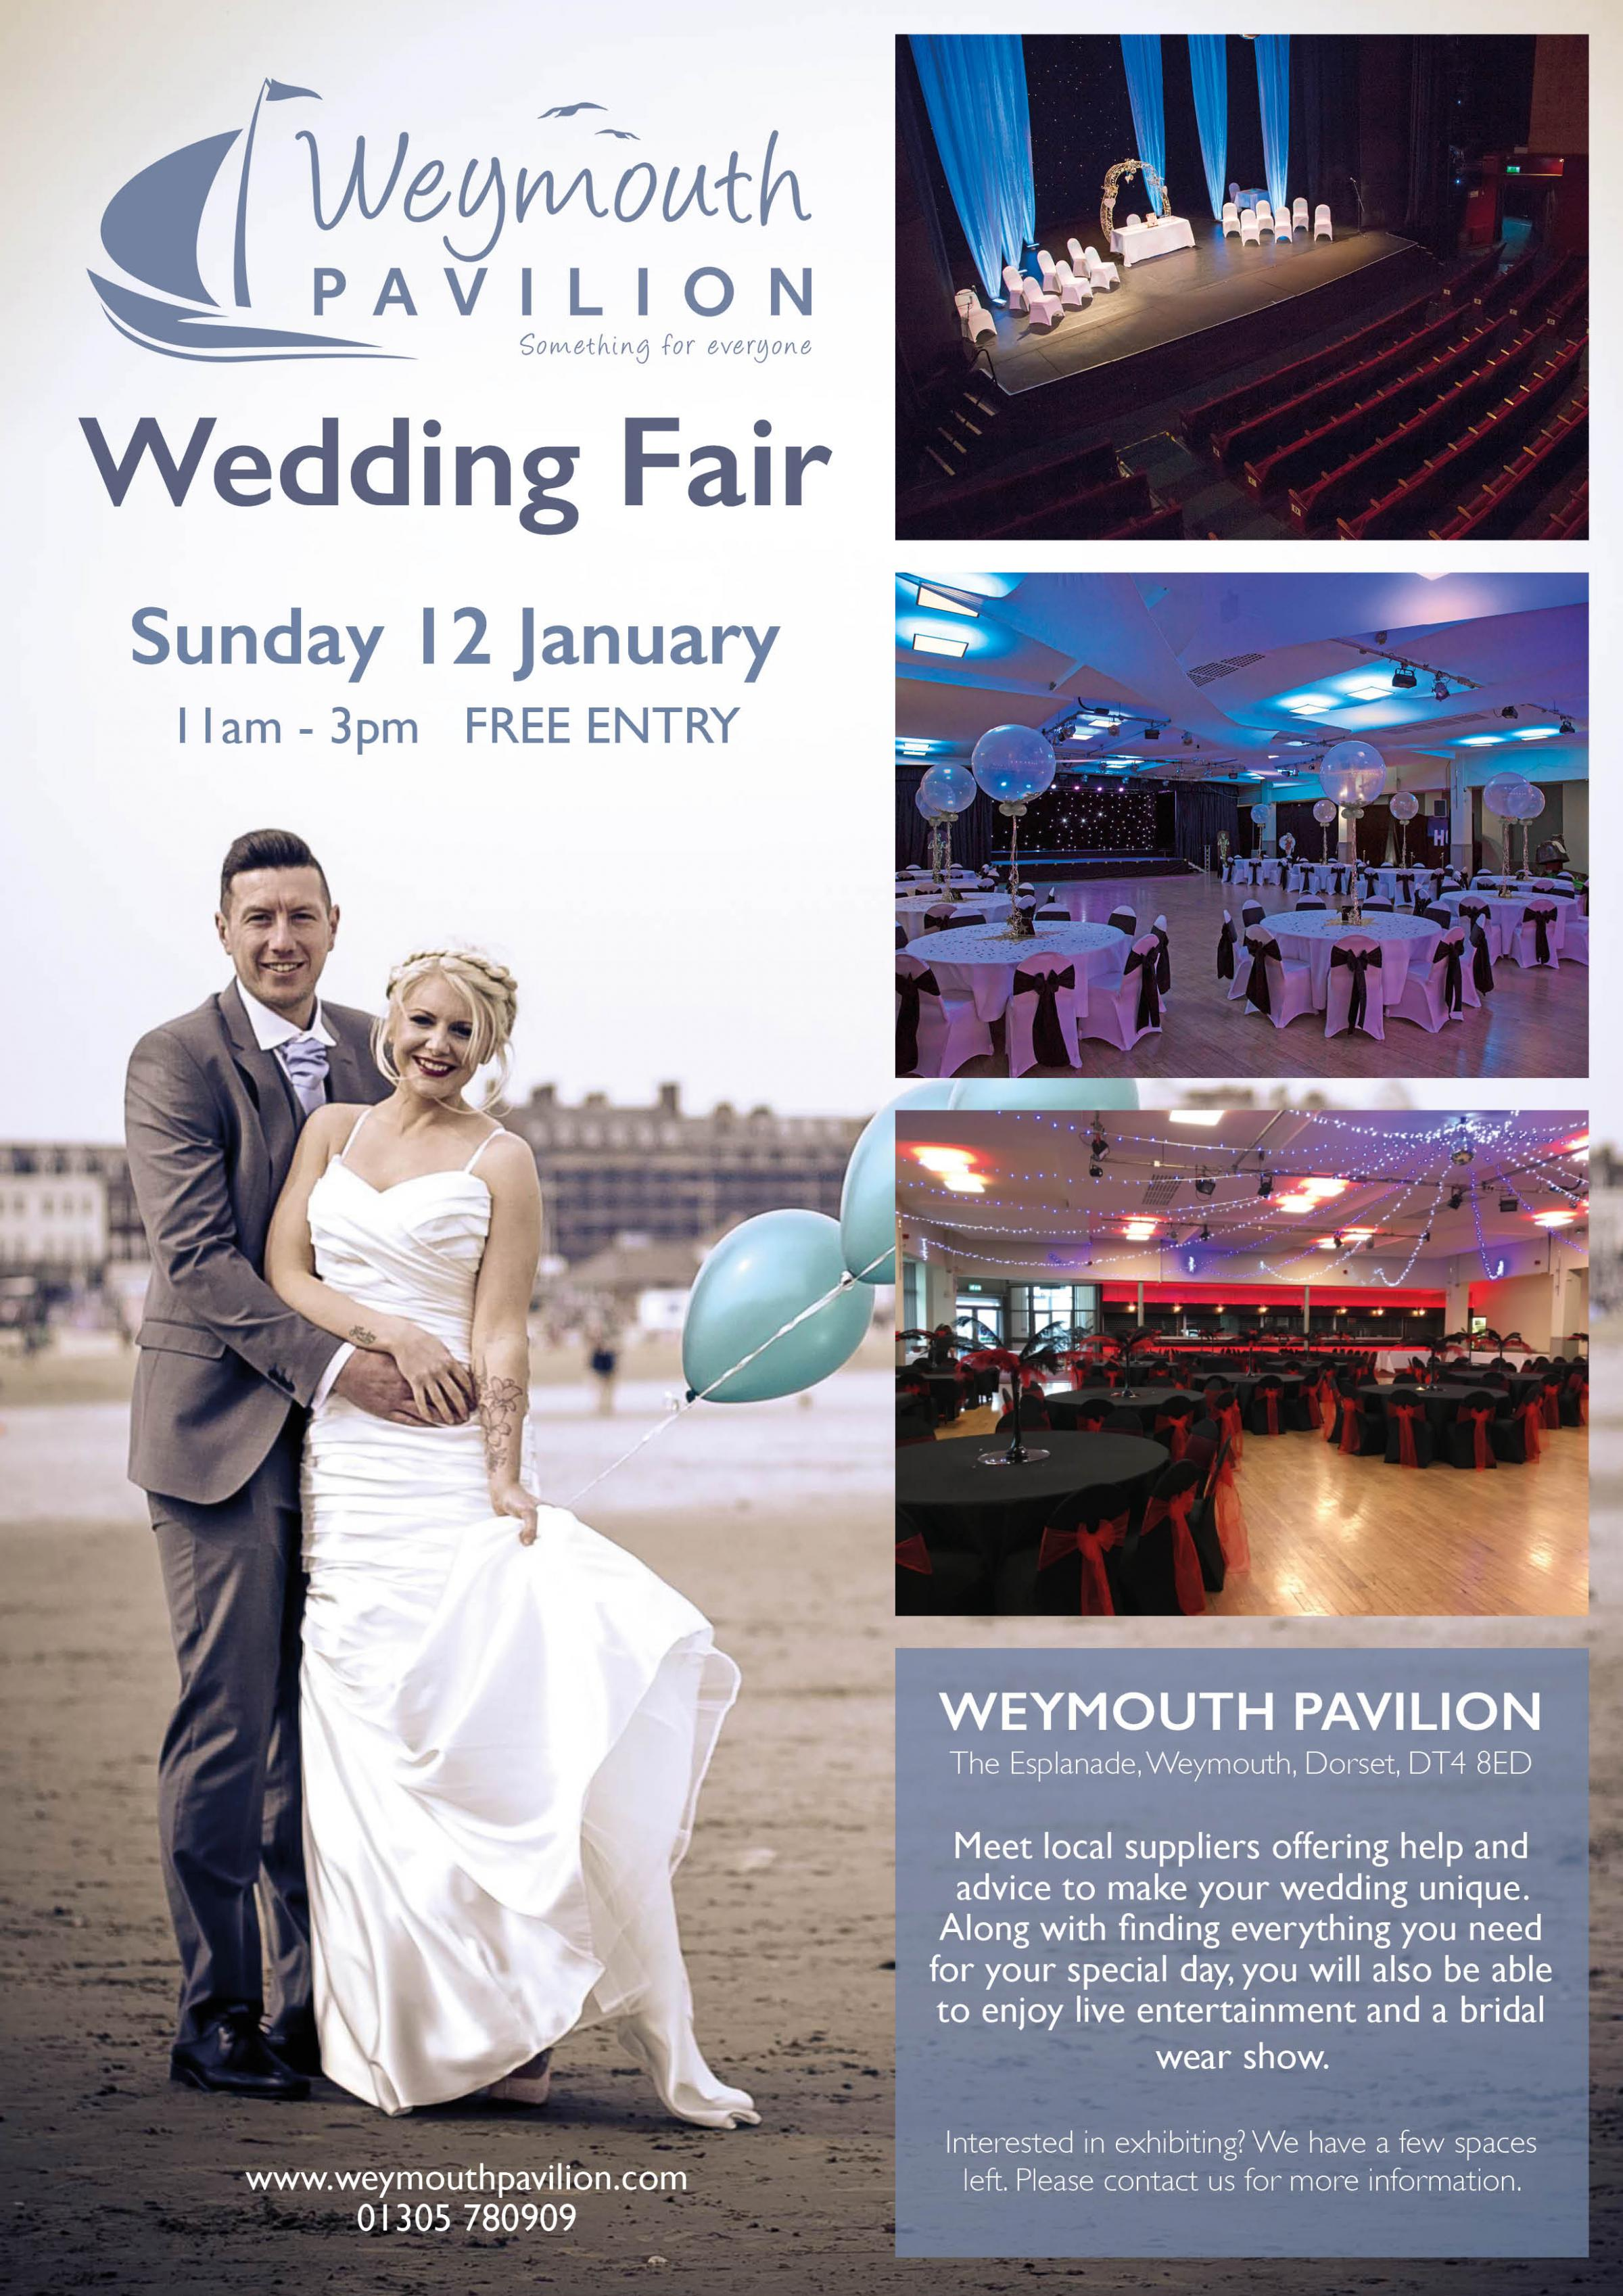 Weymouth Pavilion Wedding Fair